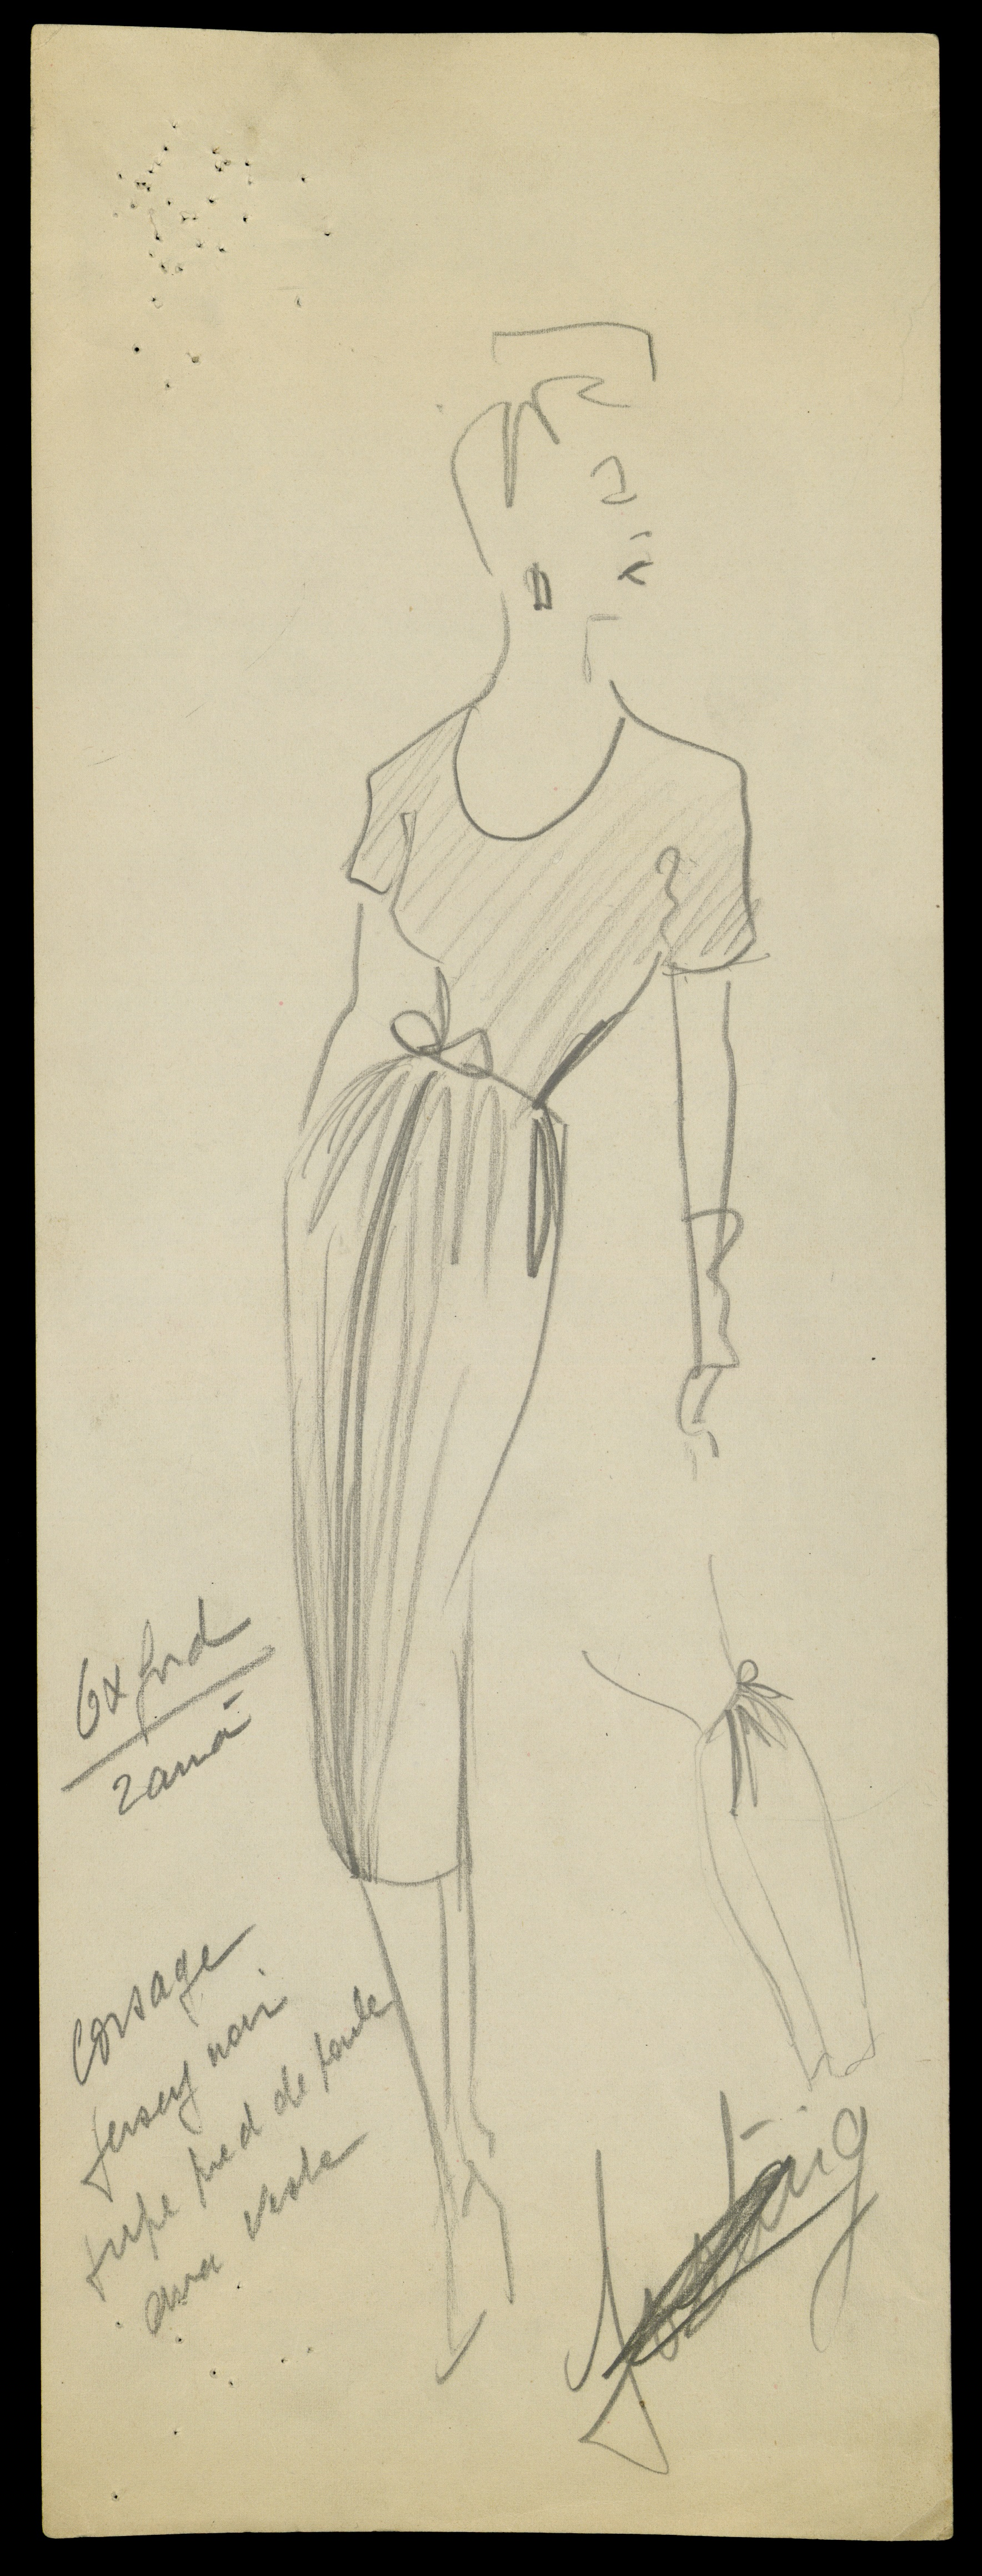 Sketch by Christian Dior for model Oxford, Haute Couture, Spring/Summer 1947 © Christian Dior